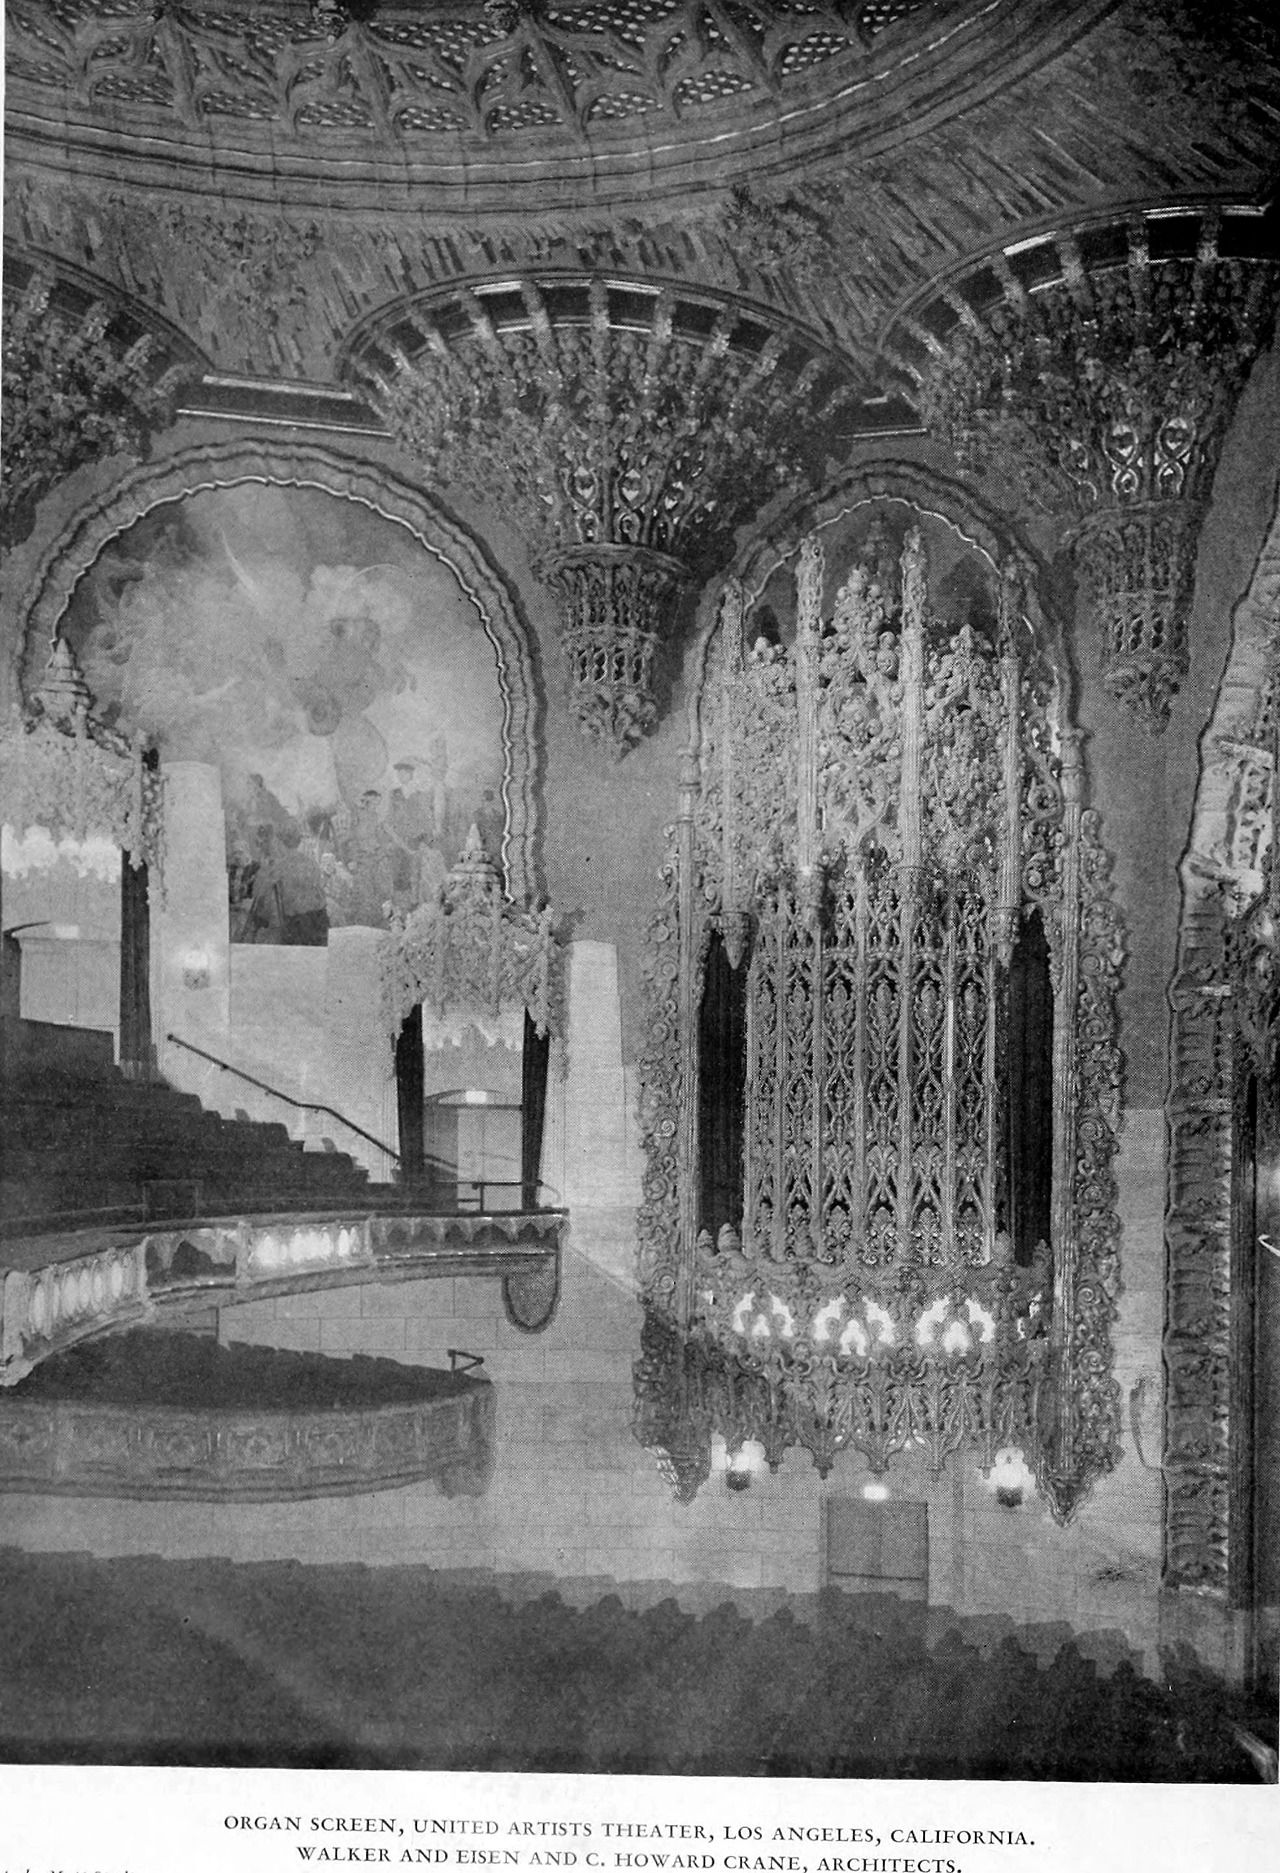 View onto the organ screen at the United Artists Theater